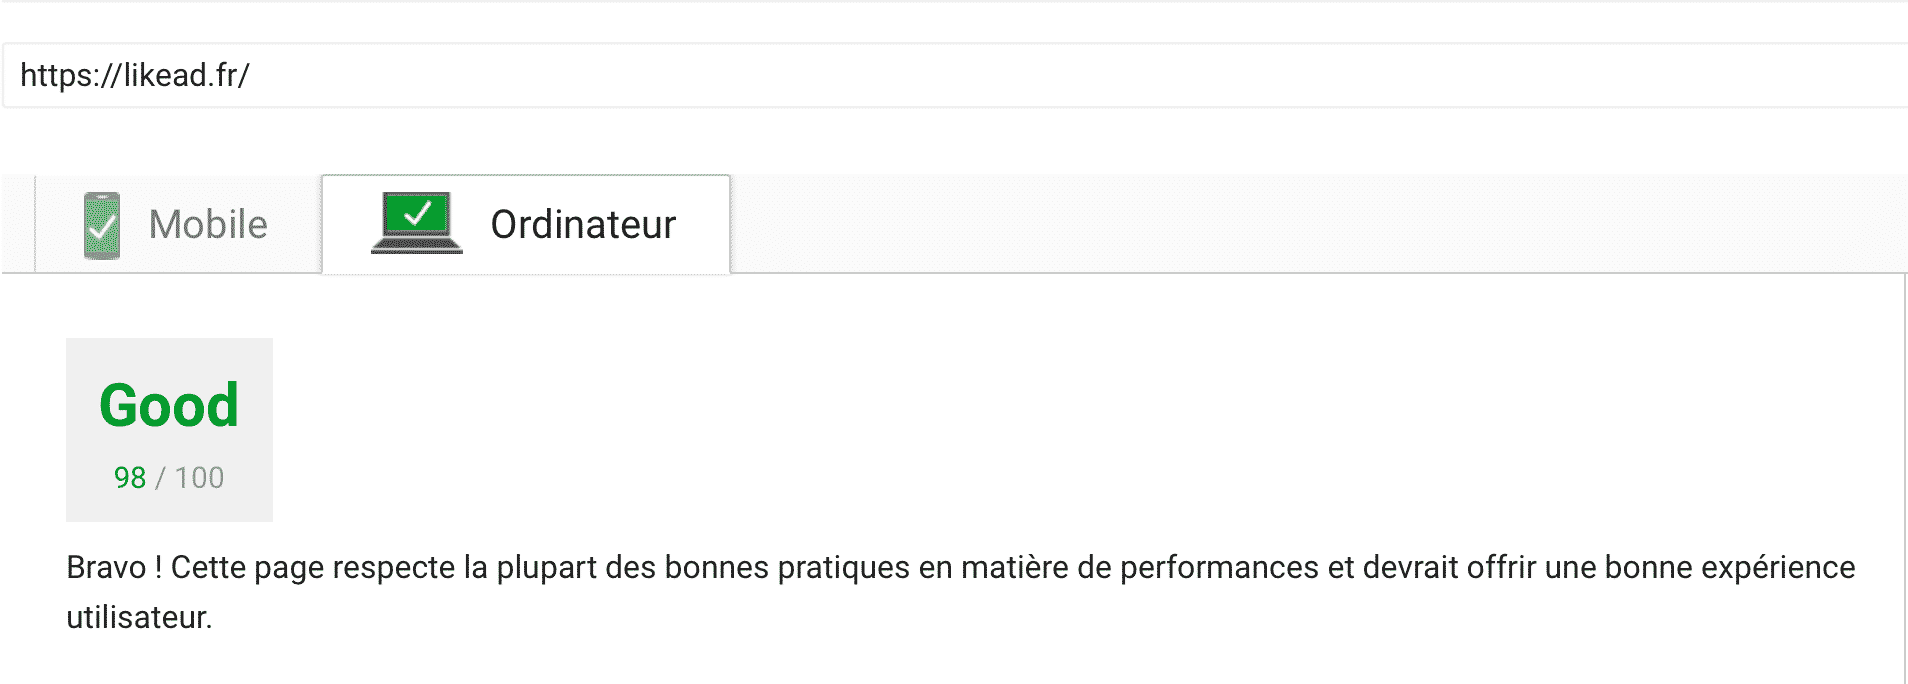 Score du temps de chargement de LIKEAD sur Google Pagespeed Insight : 98/100